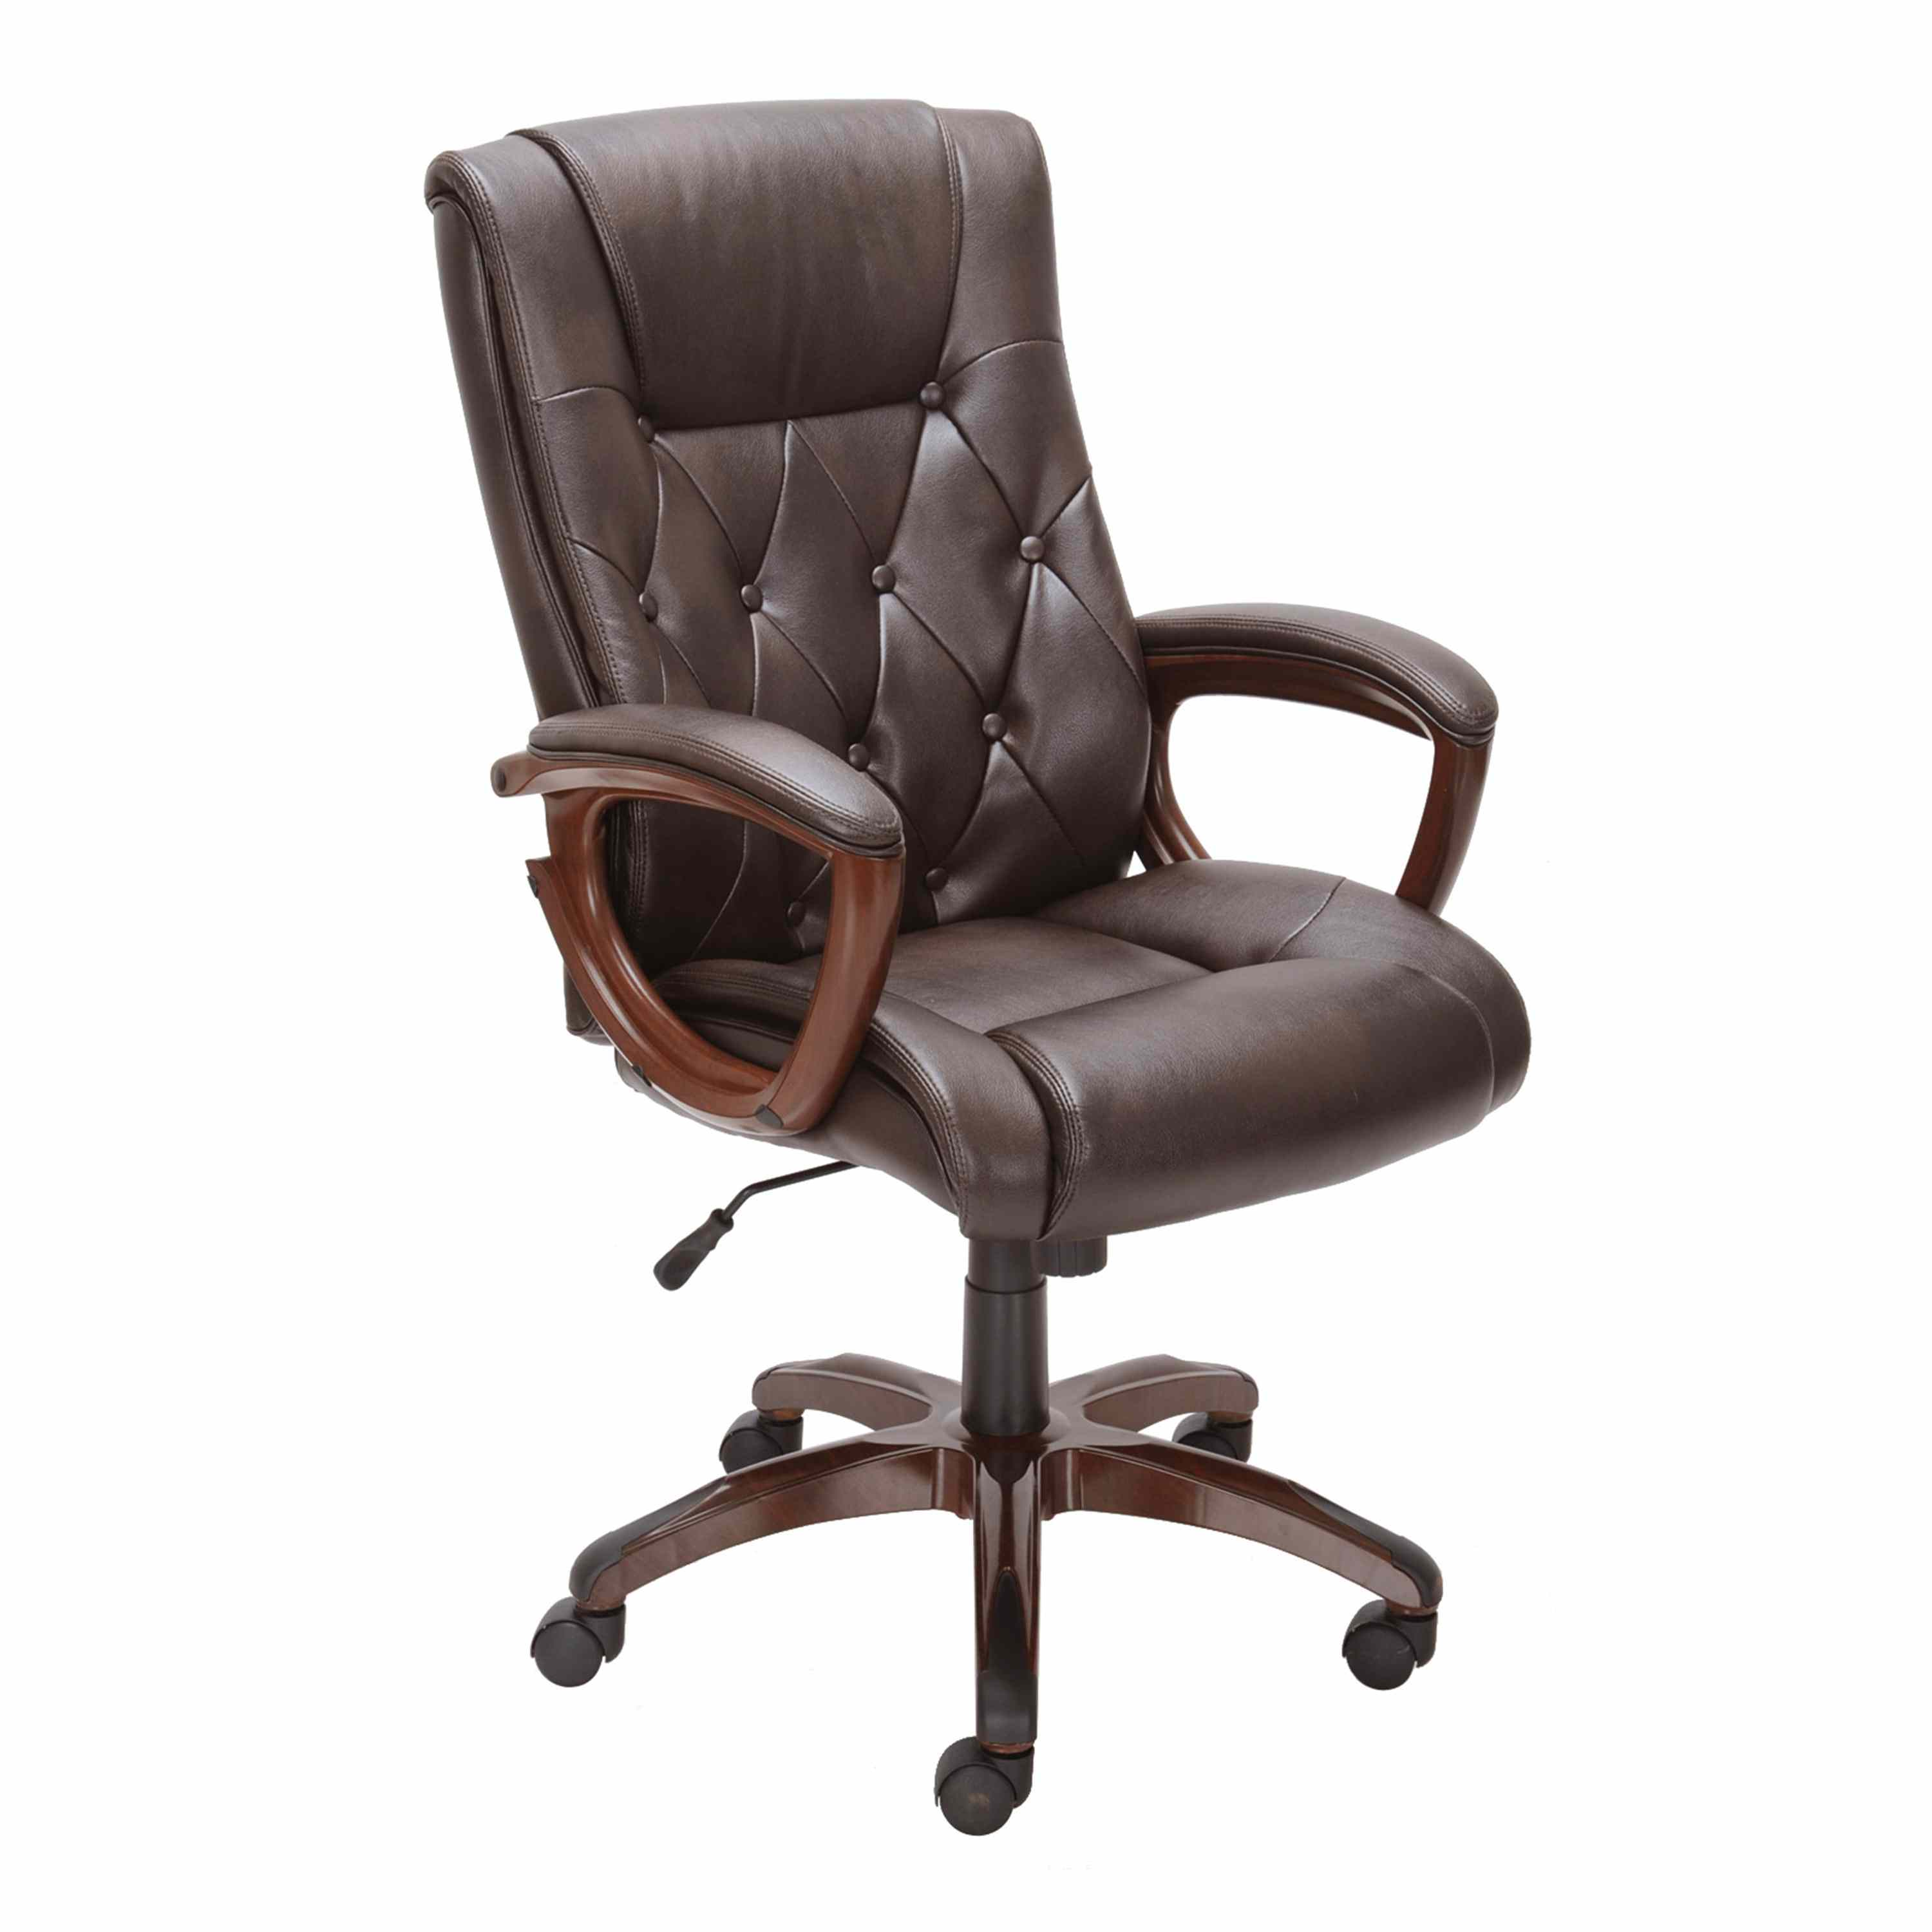 Better Homes and Gardens Bonded Leather Manager's Chair